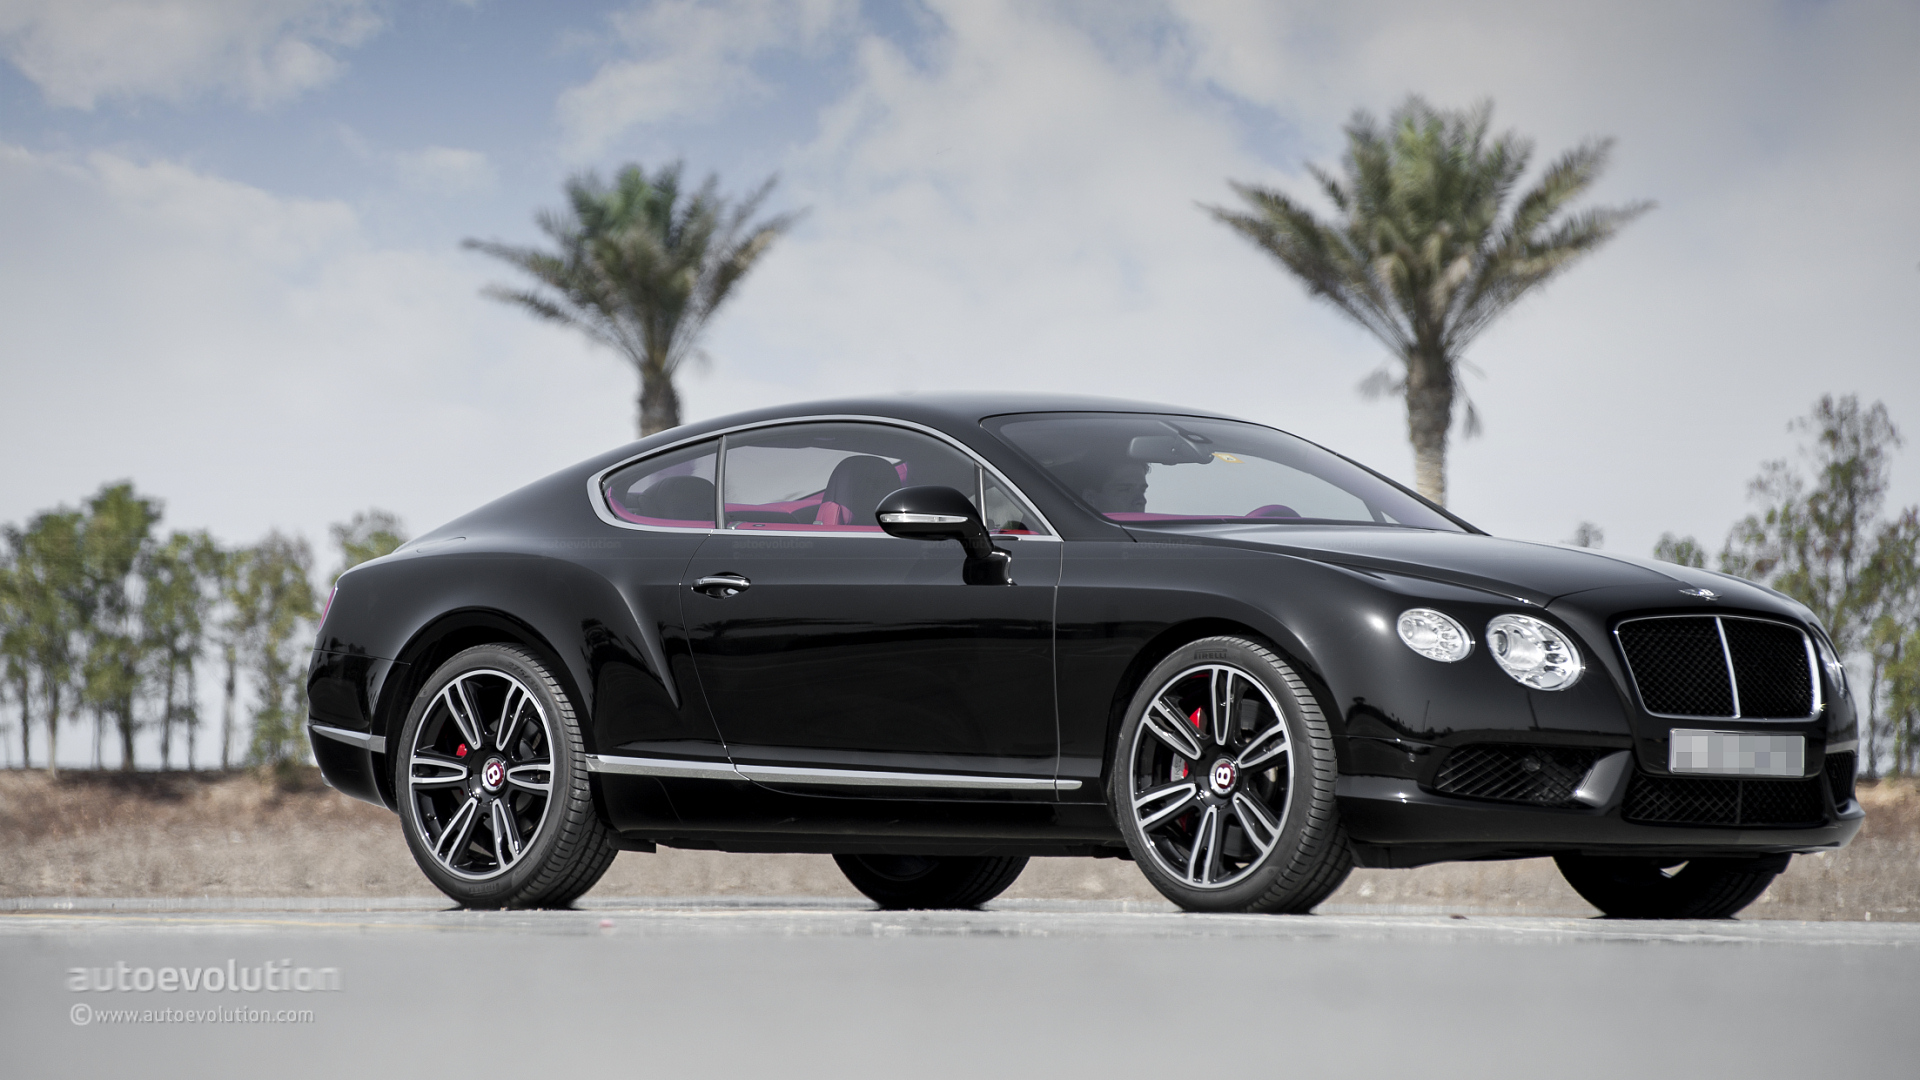 Bentley Continental Gt No Brasil Preco in addition Mercedes Amg Gt3 2015 likewise 2015 Bentley Continental Gtc Red furthermore 2 0 TFSI 221 KW 300PS Quattro moreover New Bentley Flying Spur Arrives Rm1 8 Million. on 2013 continental gt v8